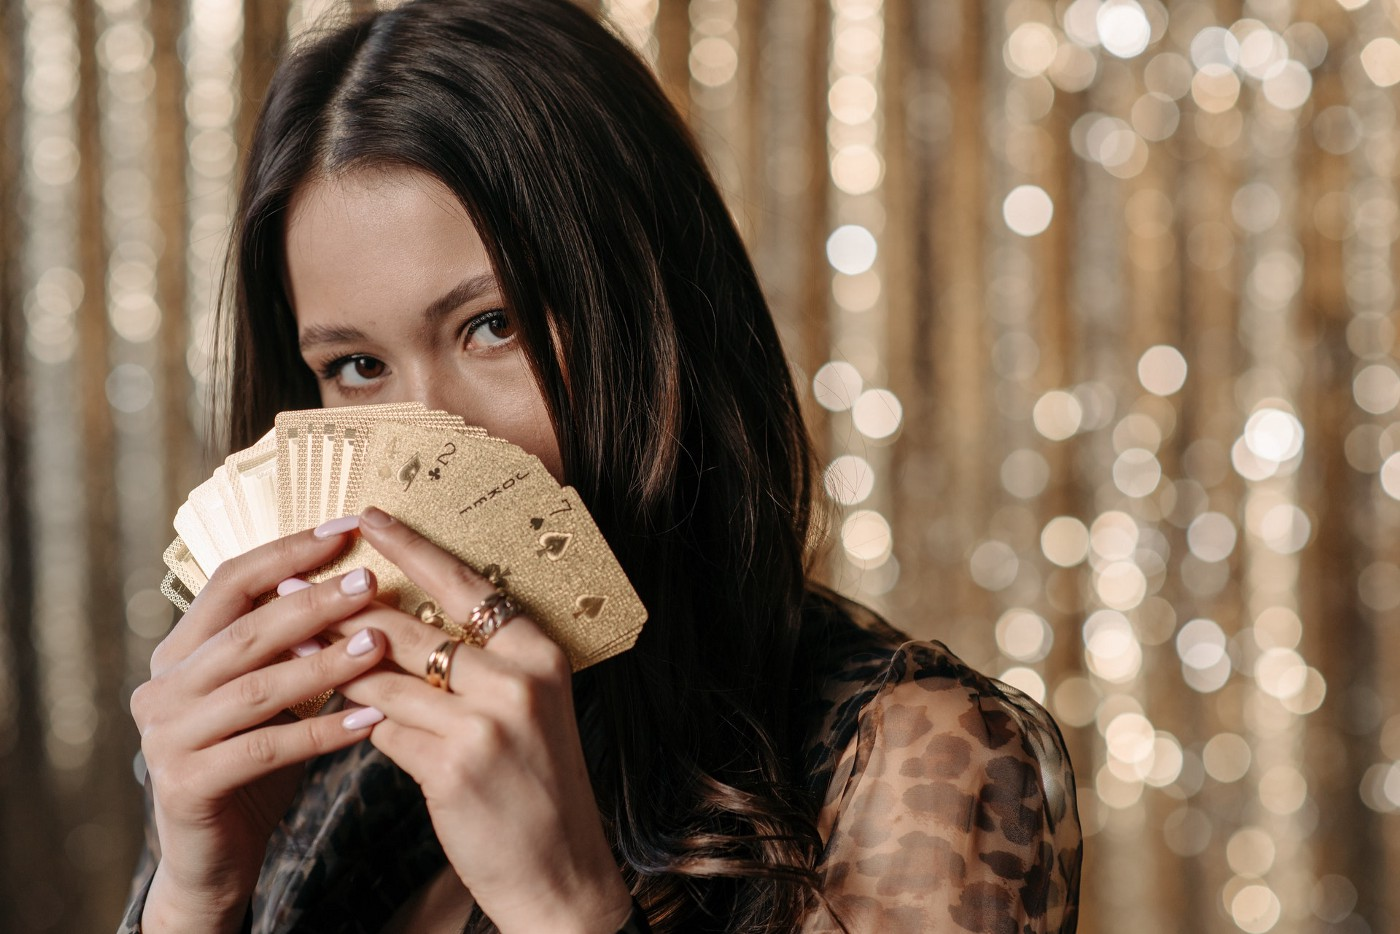 A woman holding a deck of golden playing cards.